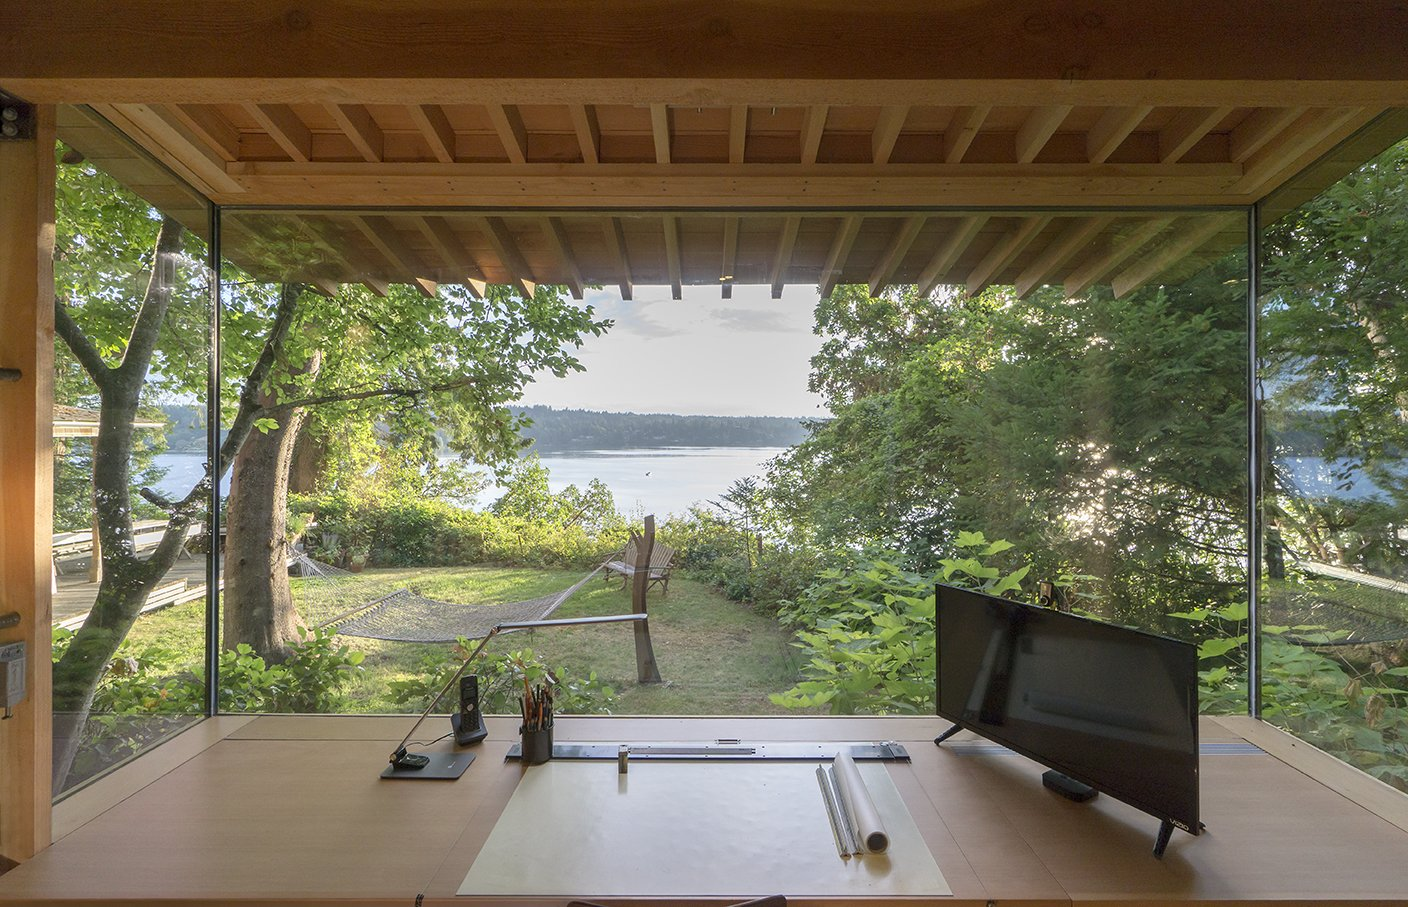 The workstation and the cabinets are by Korben Mathis Woodworking; the desk lamp is  from TaoTronics. Tagged: Office, Desk, Lamps, Craft Room, and Study.  Cutler Studio/Bunkhouse by Luke Hopping from Family Matters